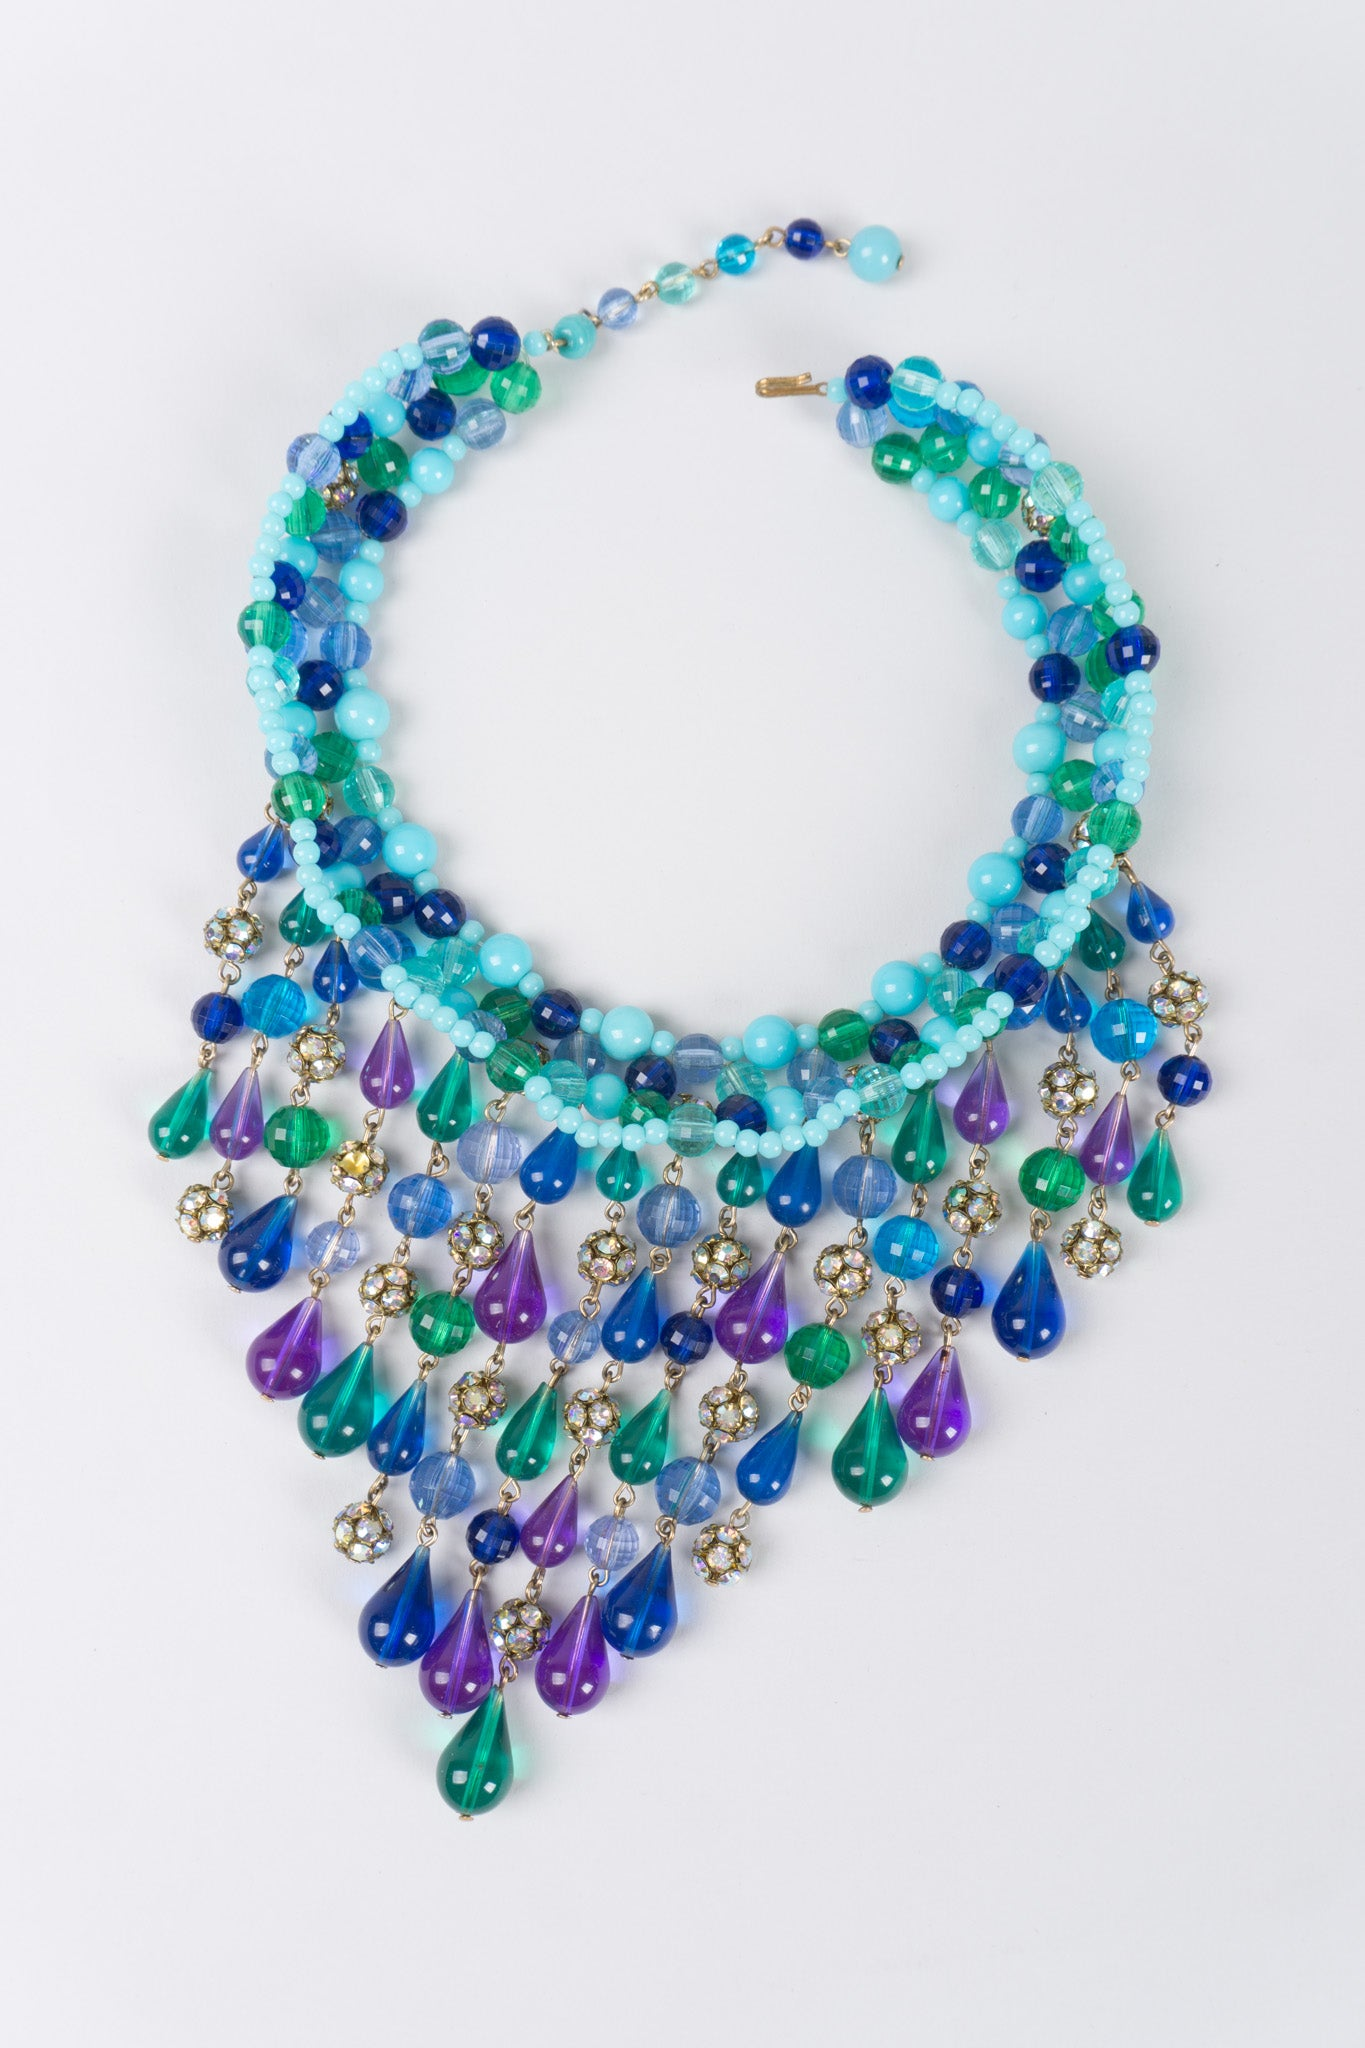 green beads cascade necklace bauble array statement round glass waterfall bib cascading seafoam